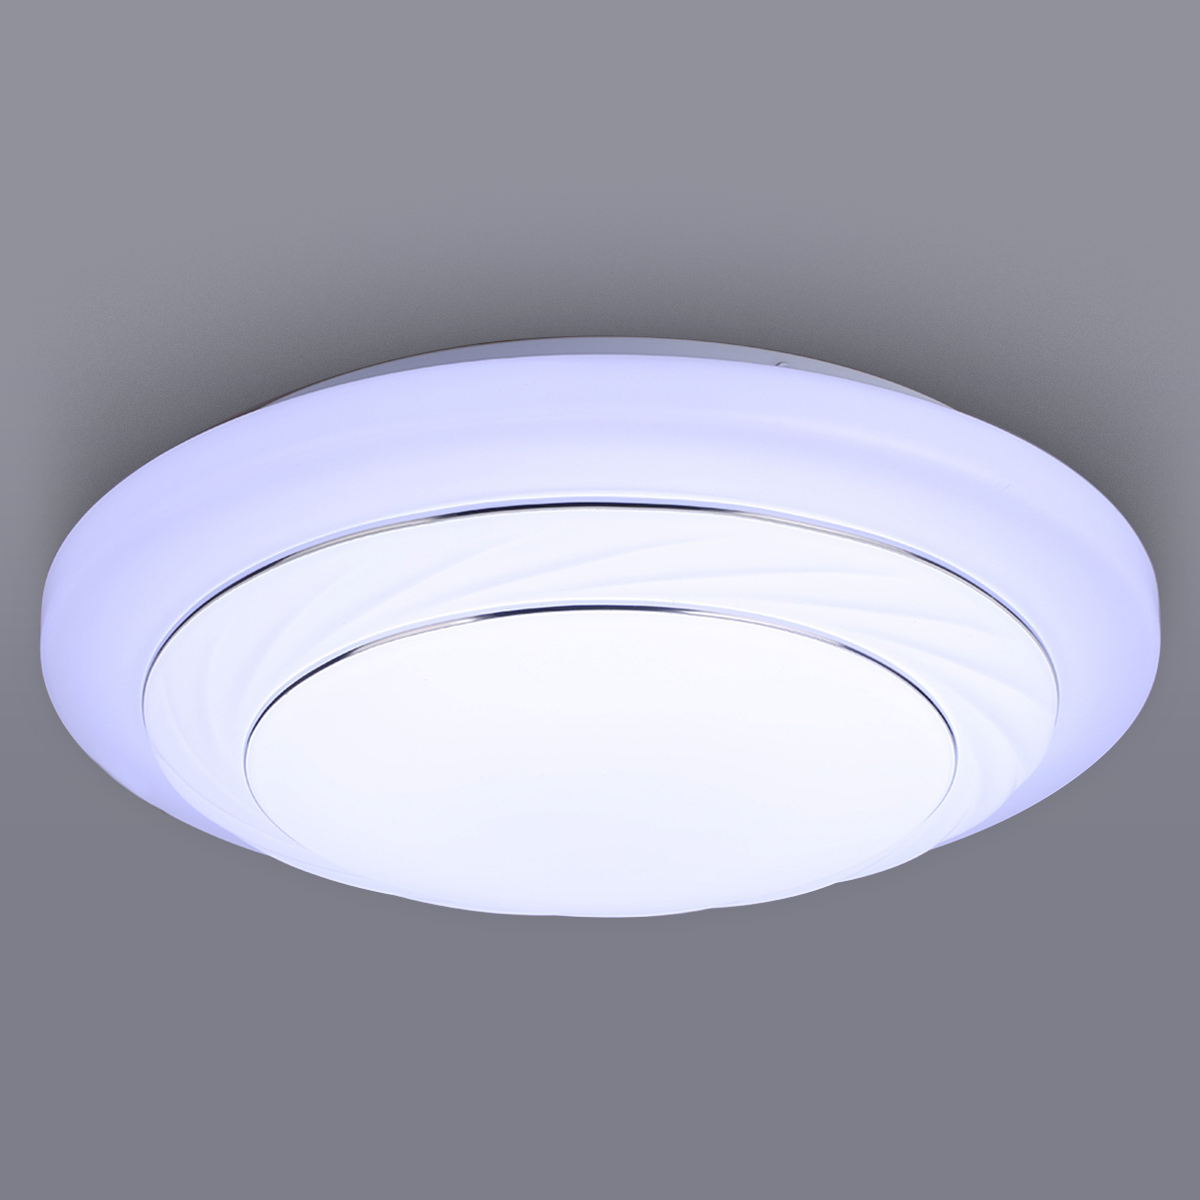 24w Led Dimmable Ceiling Light Round Flush Mounted Fixture: 24W LED Ceiling Light Round Flush Mount Fixture Balcony